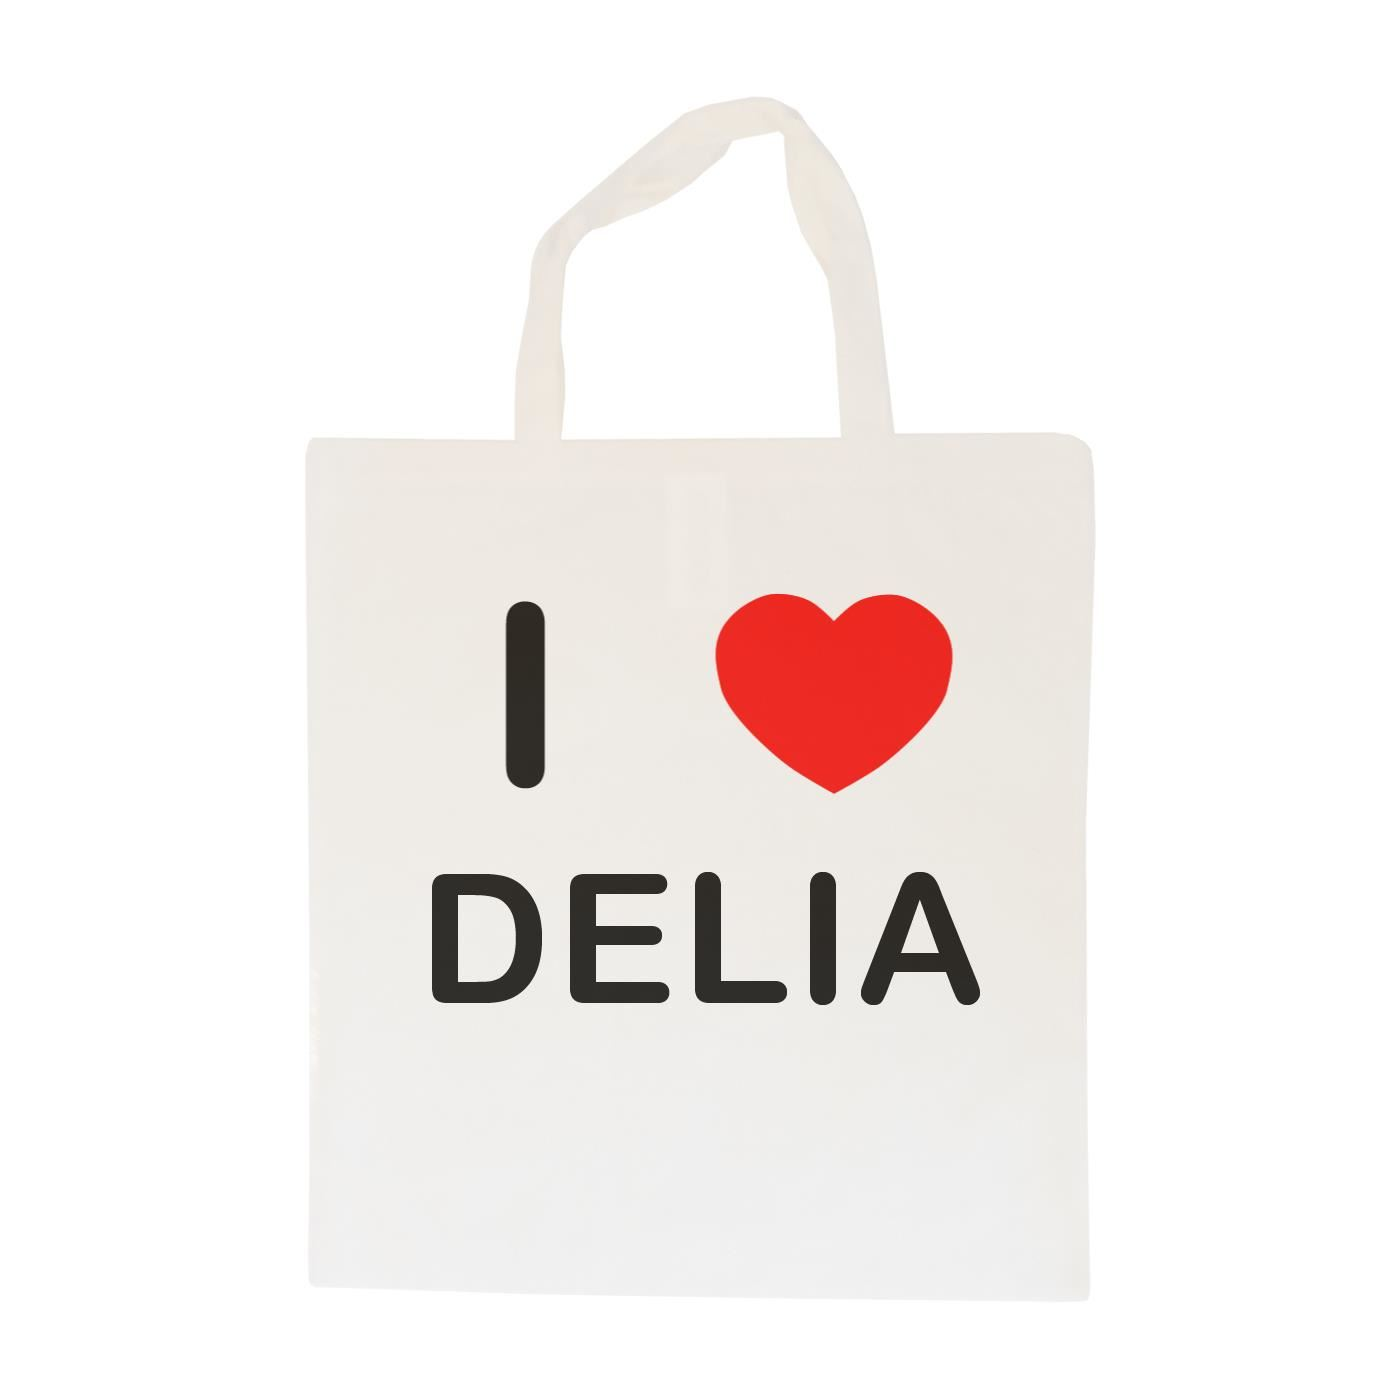 I Love Delia - Cotton Bag | Size choice Tote, Shopper or Sling